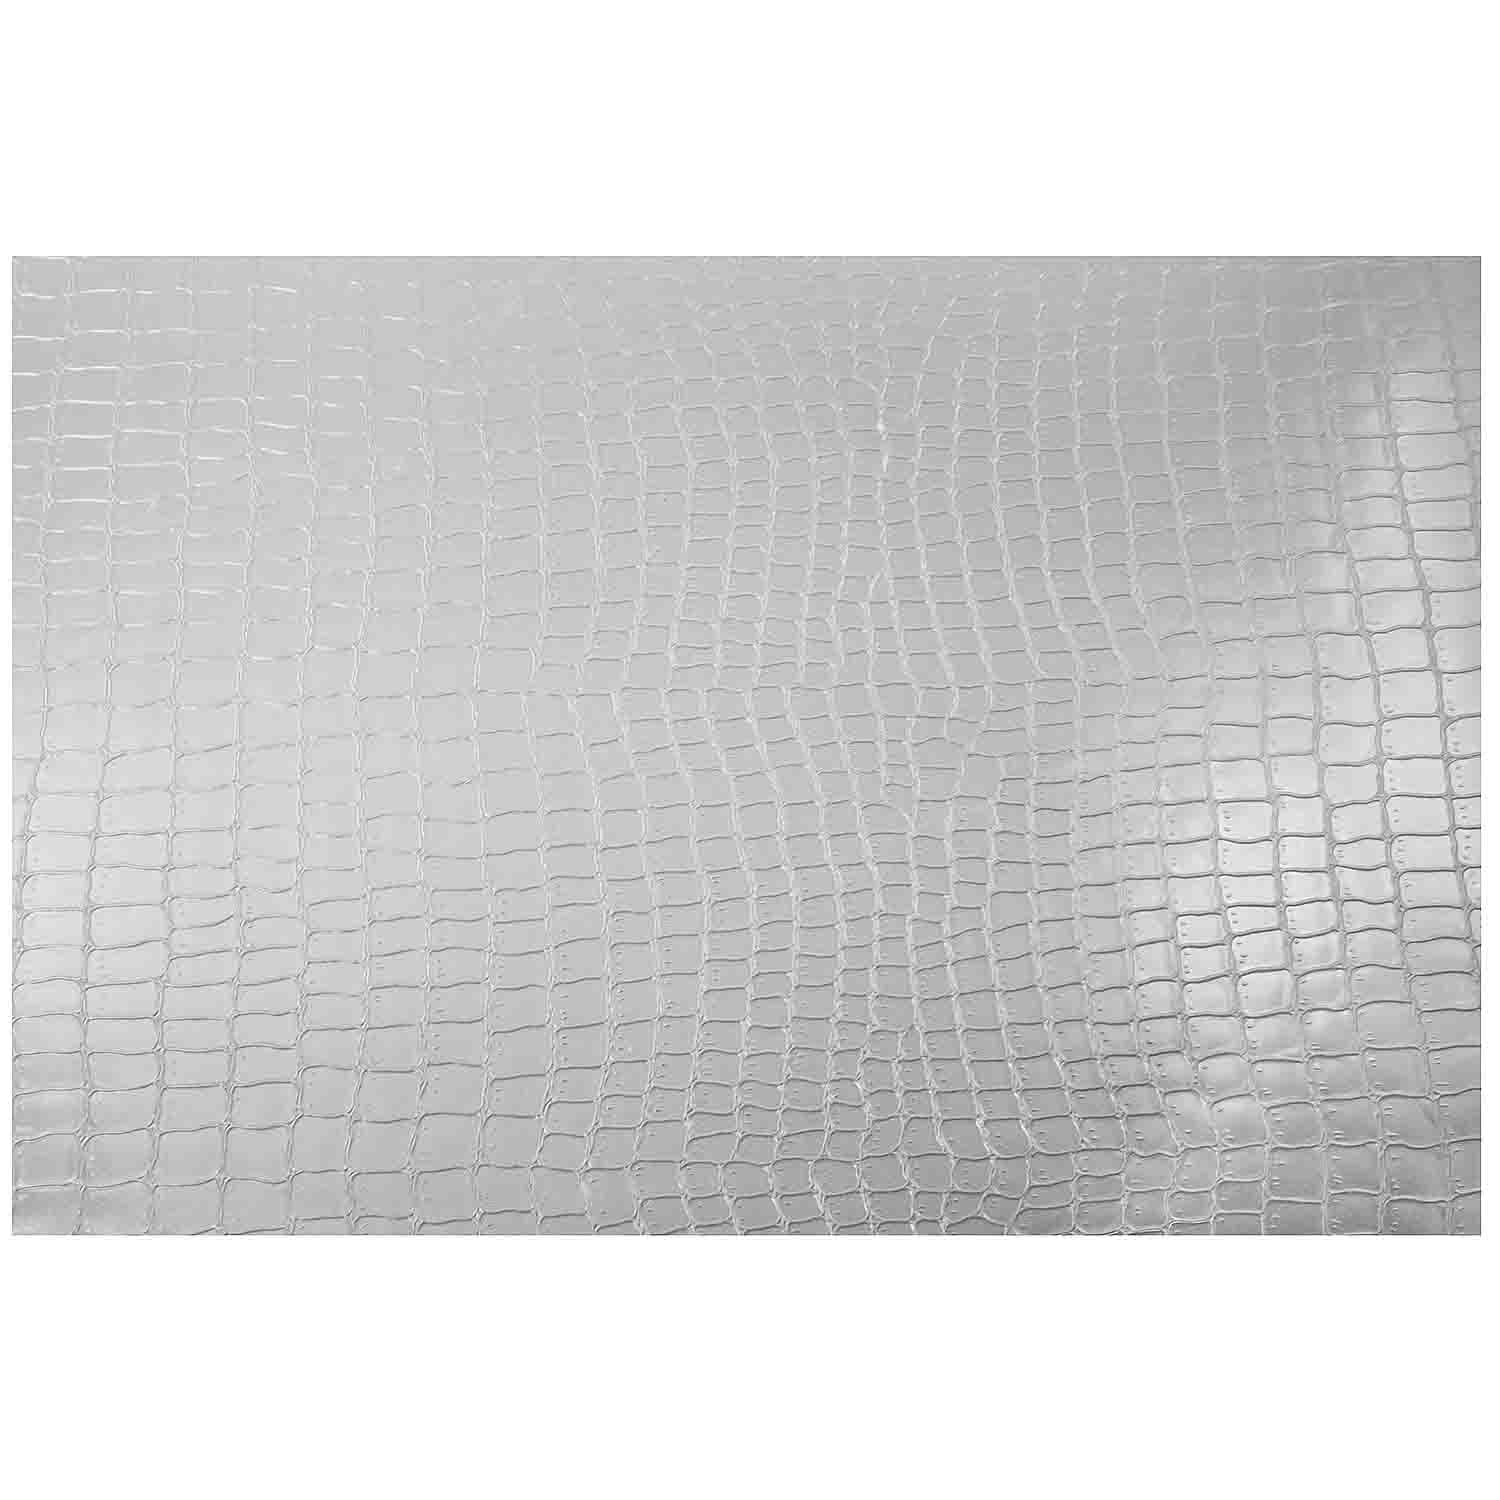 Alligator Skin Impression Mat